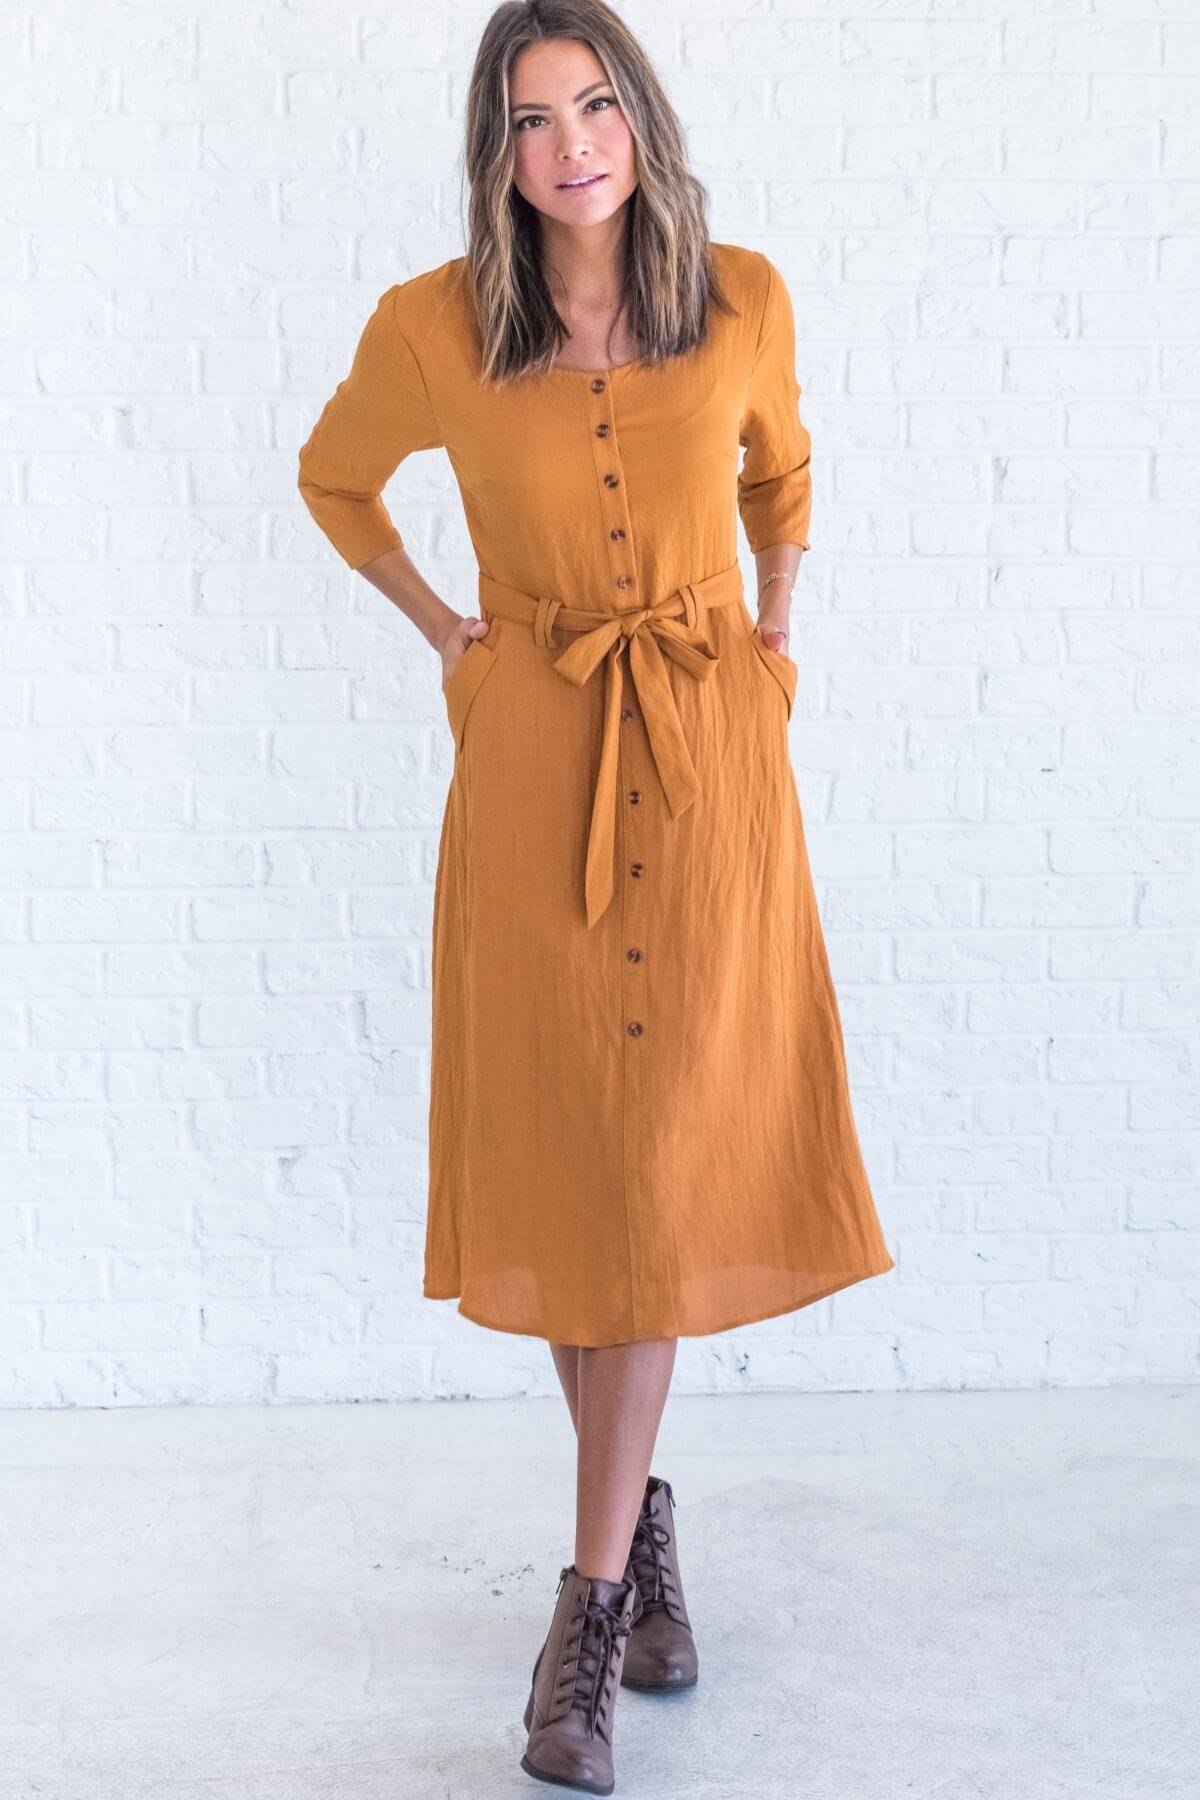 Mustard Yellow Button Up 3/4 Sleeve Midi Dresses for Women